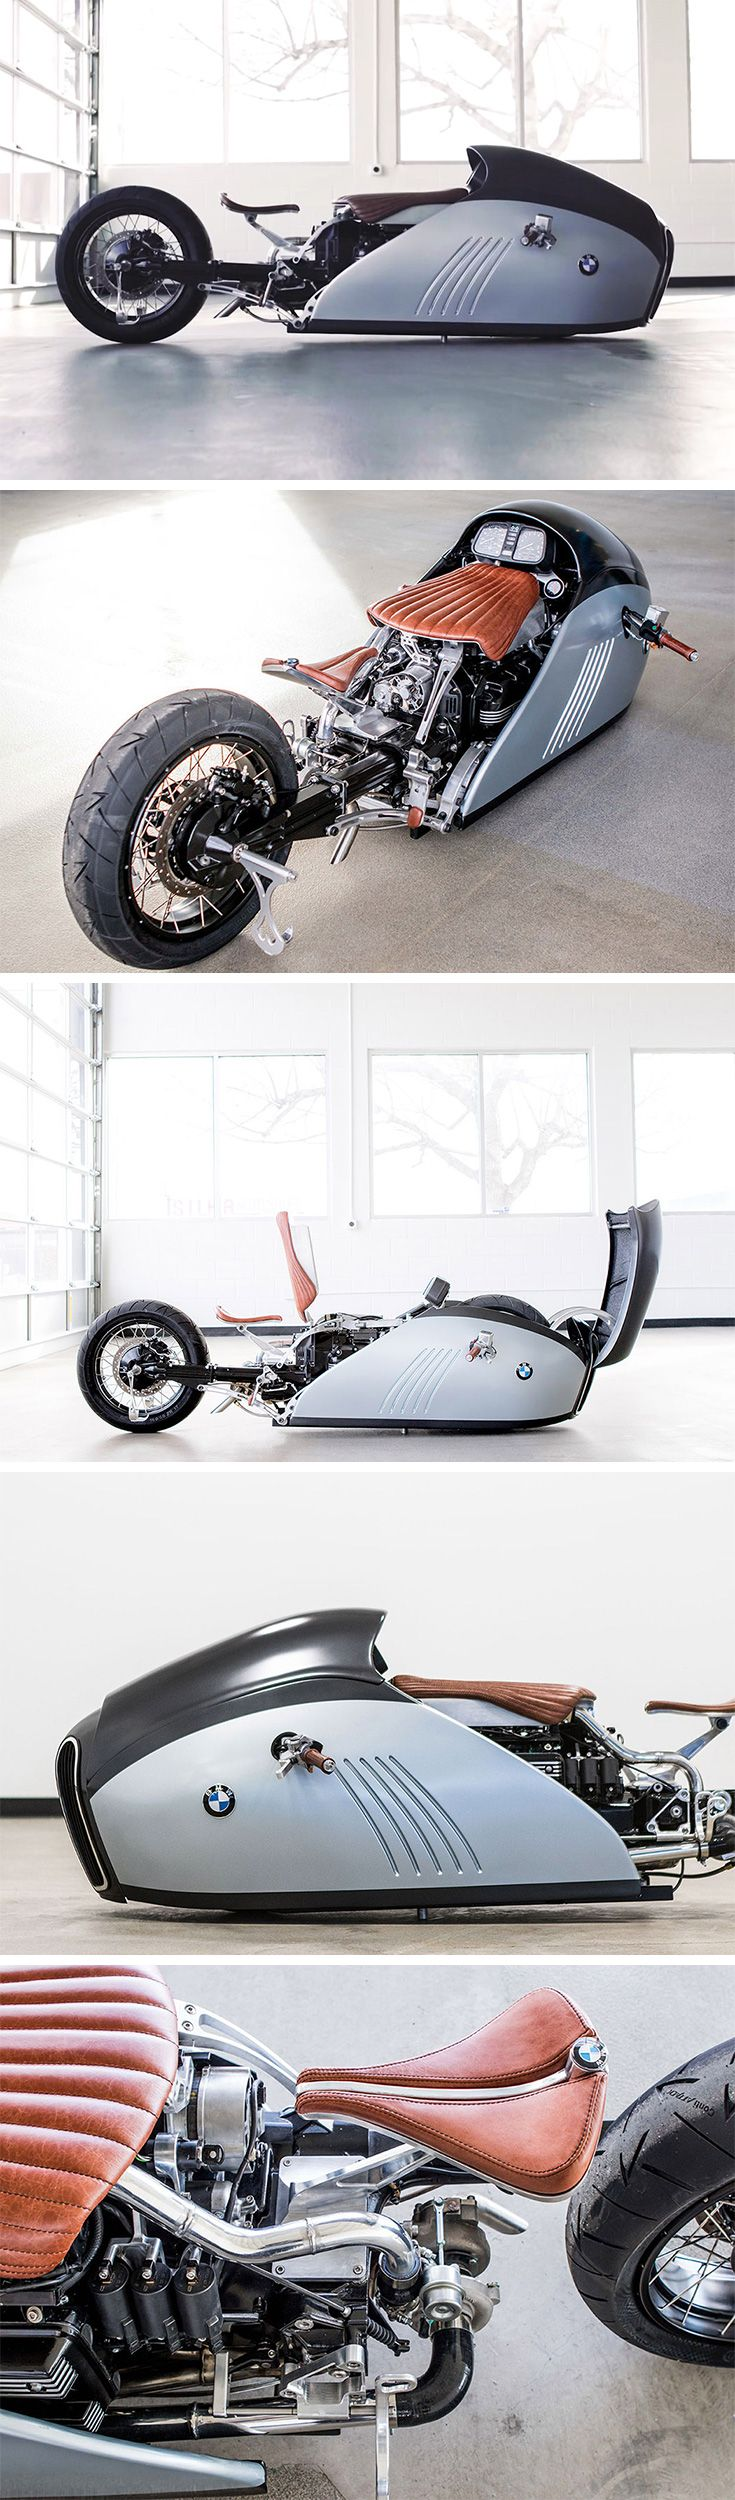 "What do you get when an old-school bike builder and a high-tech industrial designer put their heads together? The answer is a custom bike that's almost too beautiful to be ridden. It's called ""ALPHA"" – a sharklike custom BMW K75 cruiser with it's eye firmly on the land speed record."